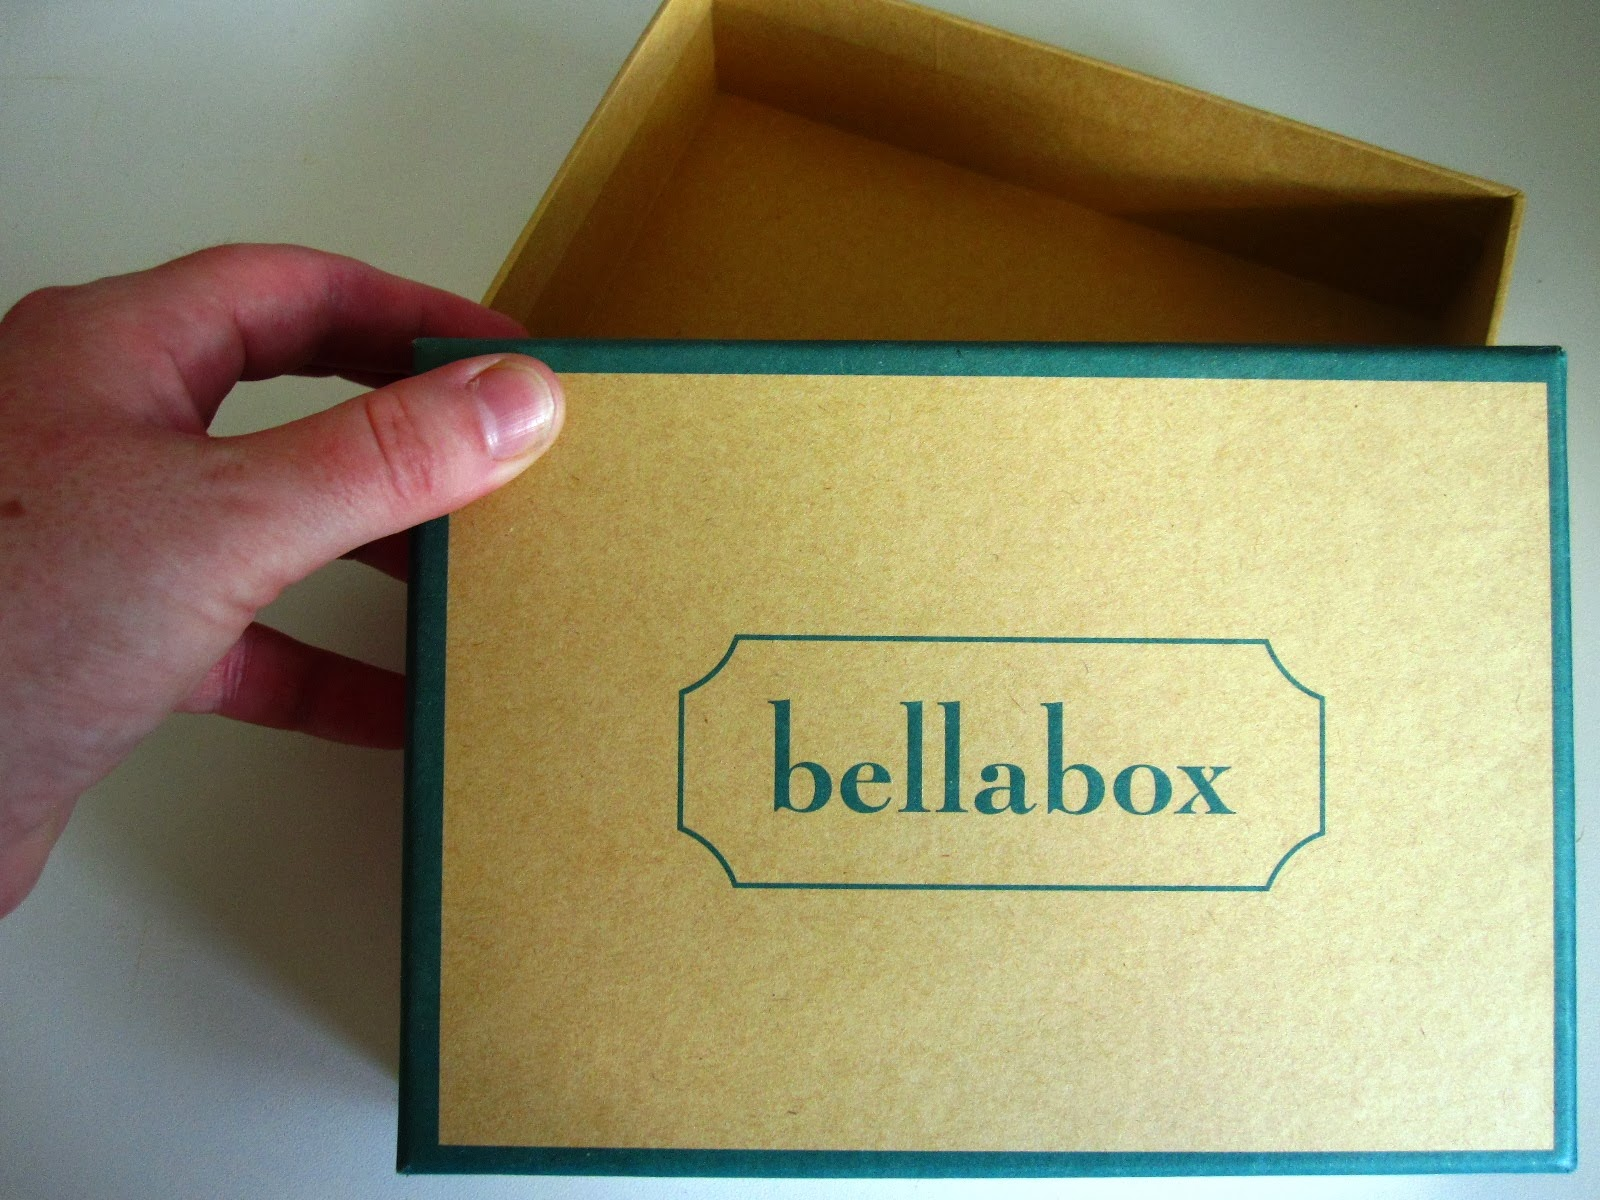 Empty cardboard box with the brand bellabox written on the lid